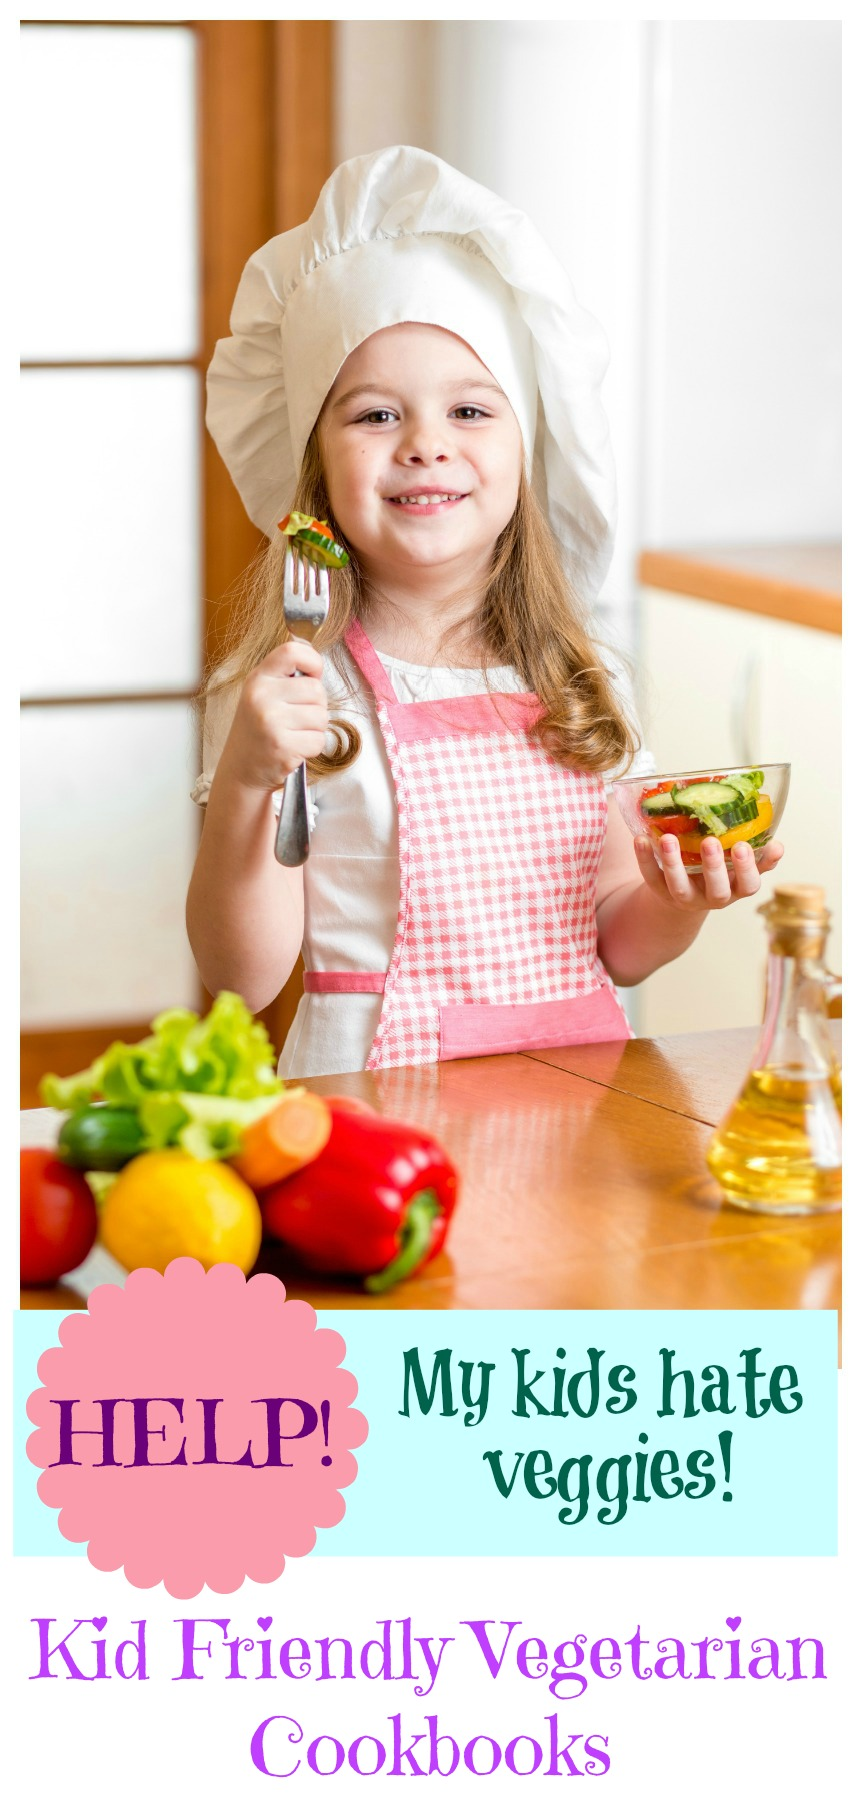 Looking for some Kid Friendly Vegetarian Cookbooks? Here are some of our favorite vegetarian cookbooks for making amazing kid friendly meals!